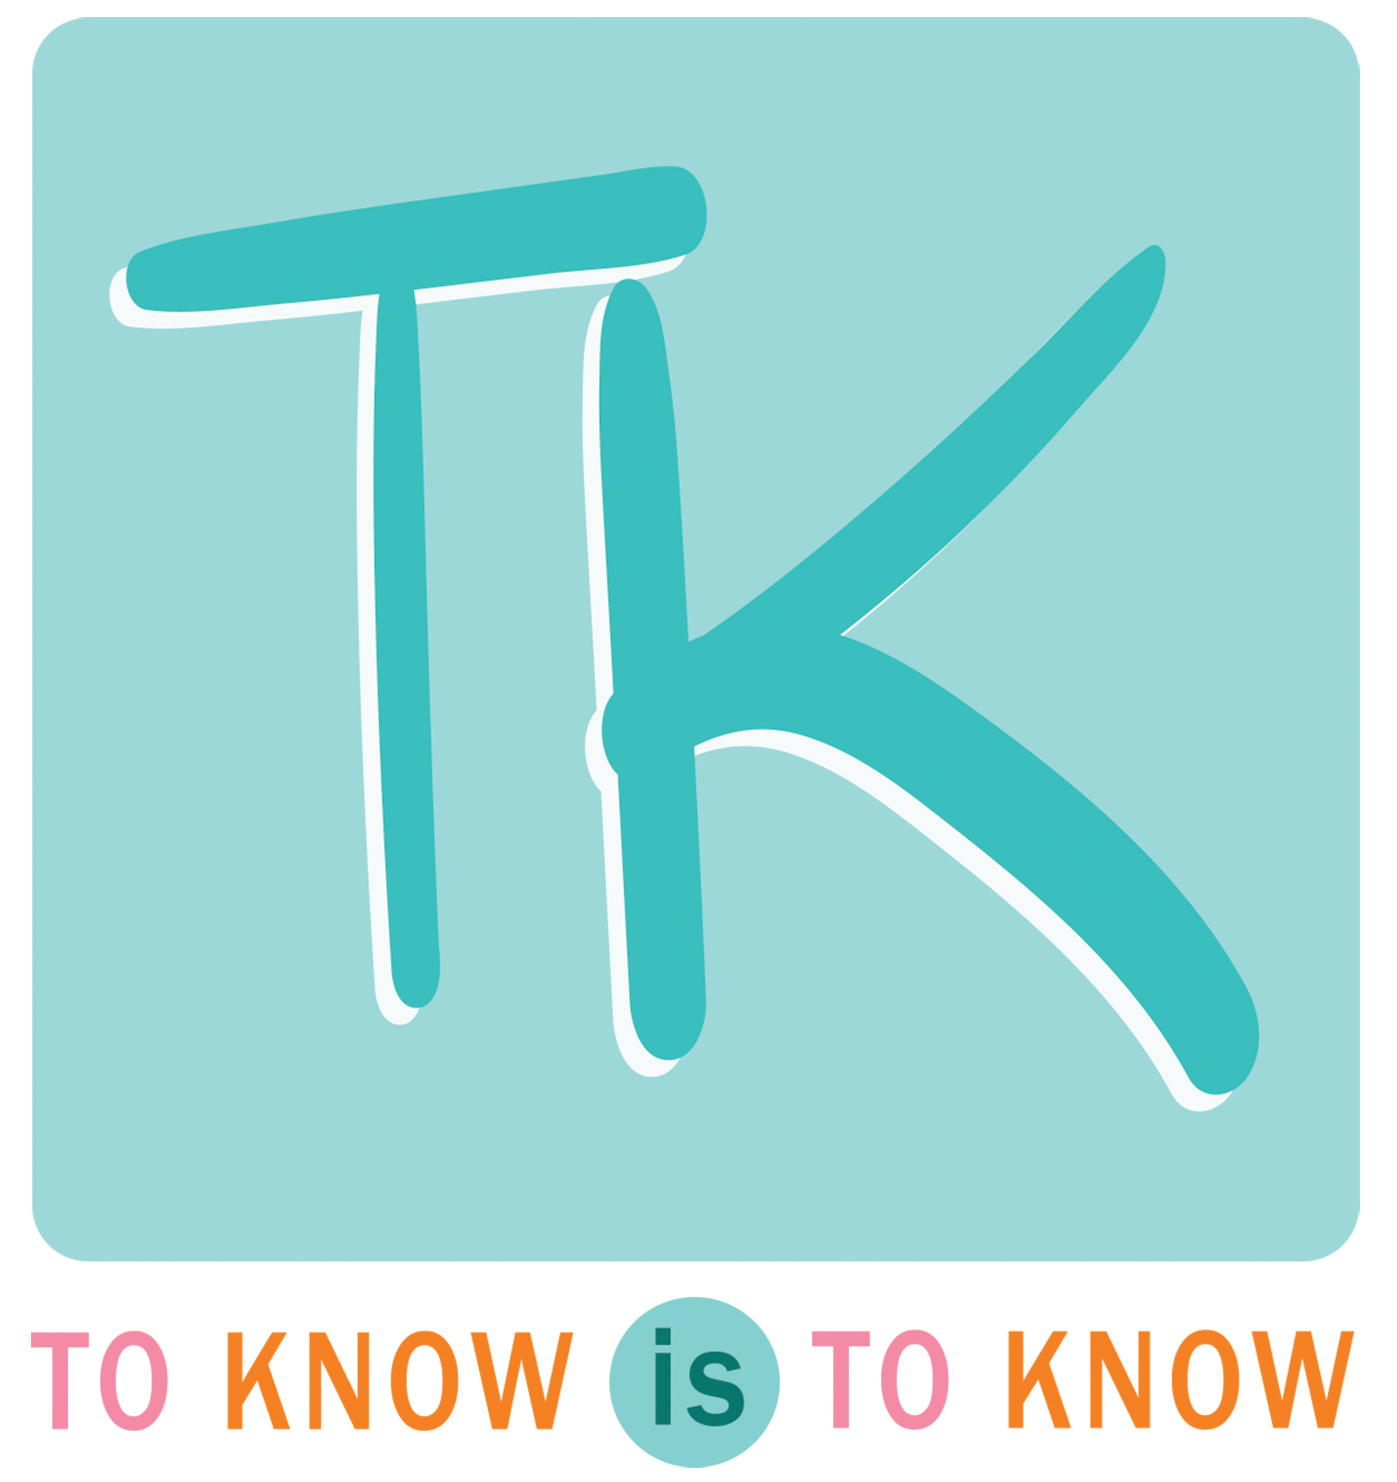 To Know is To Know